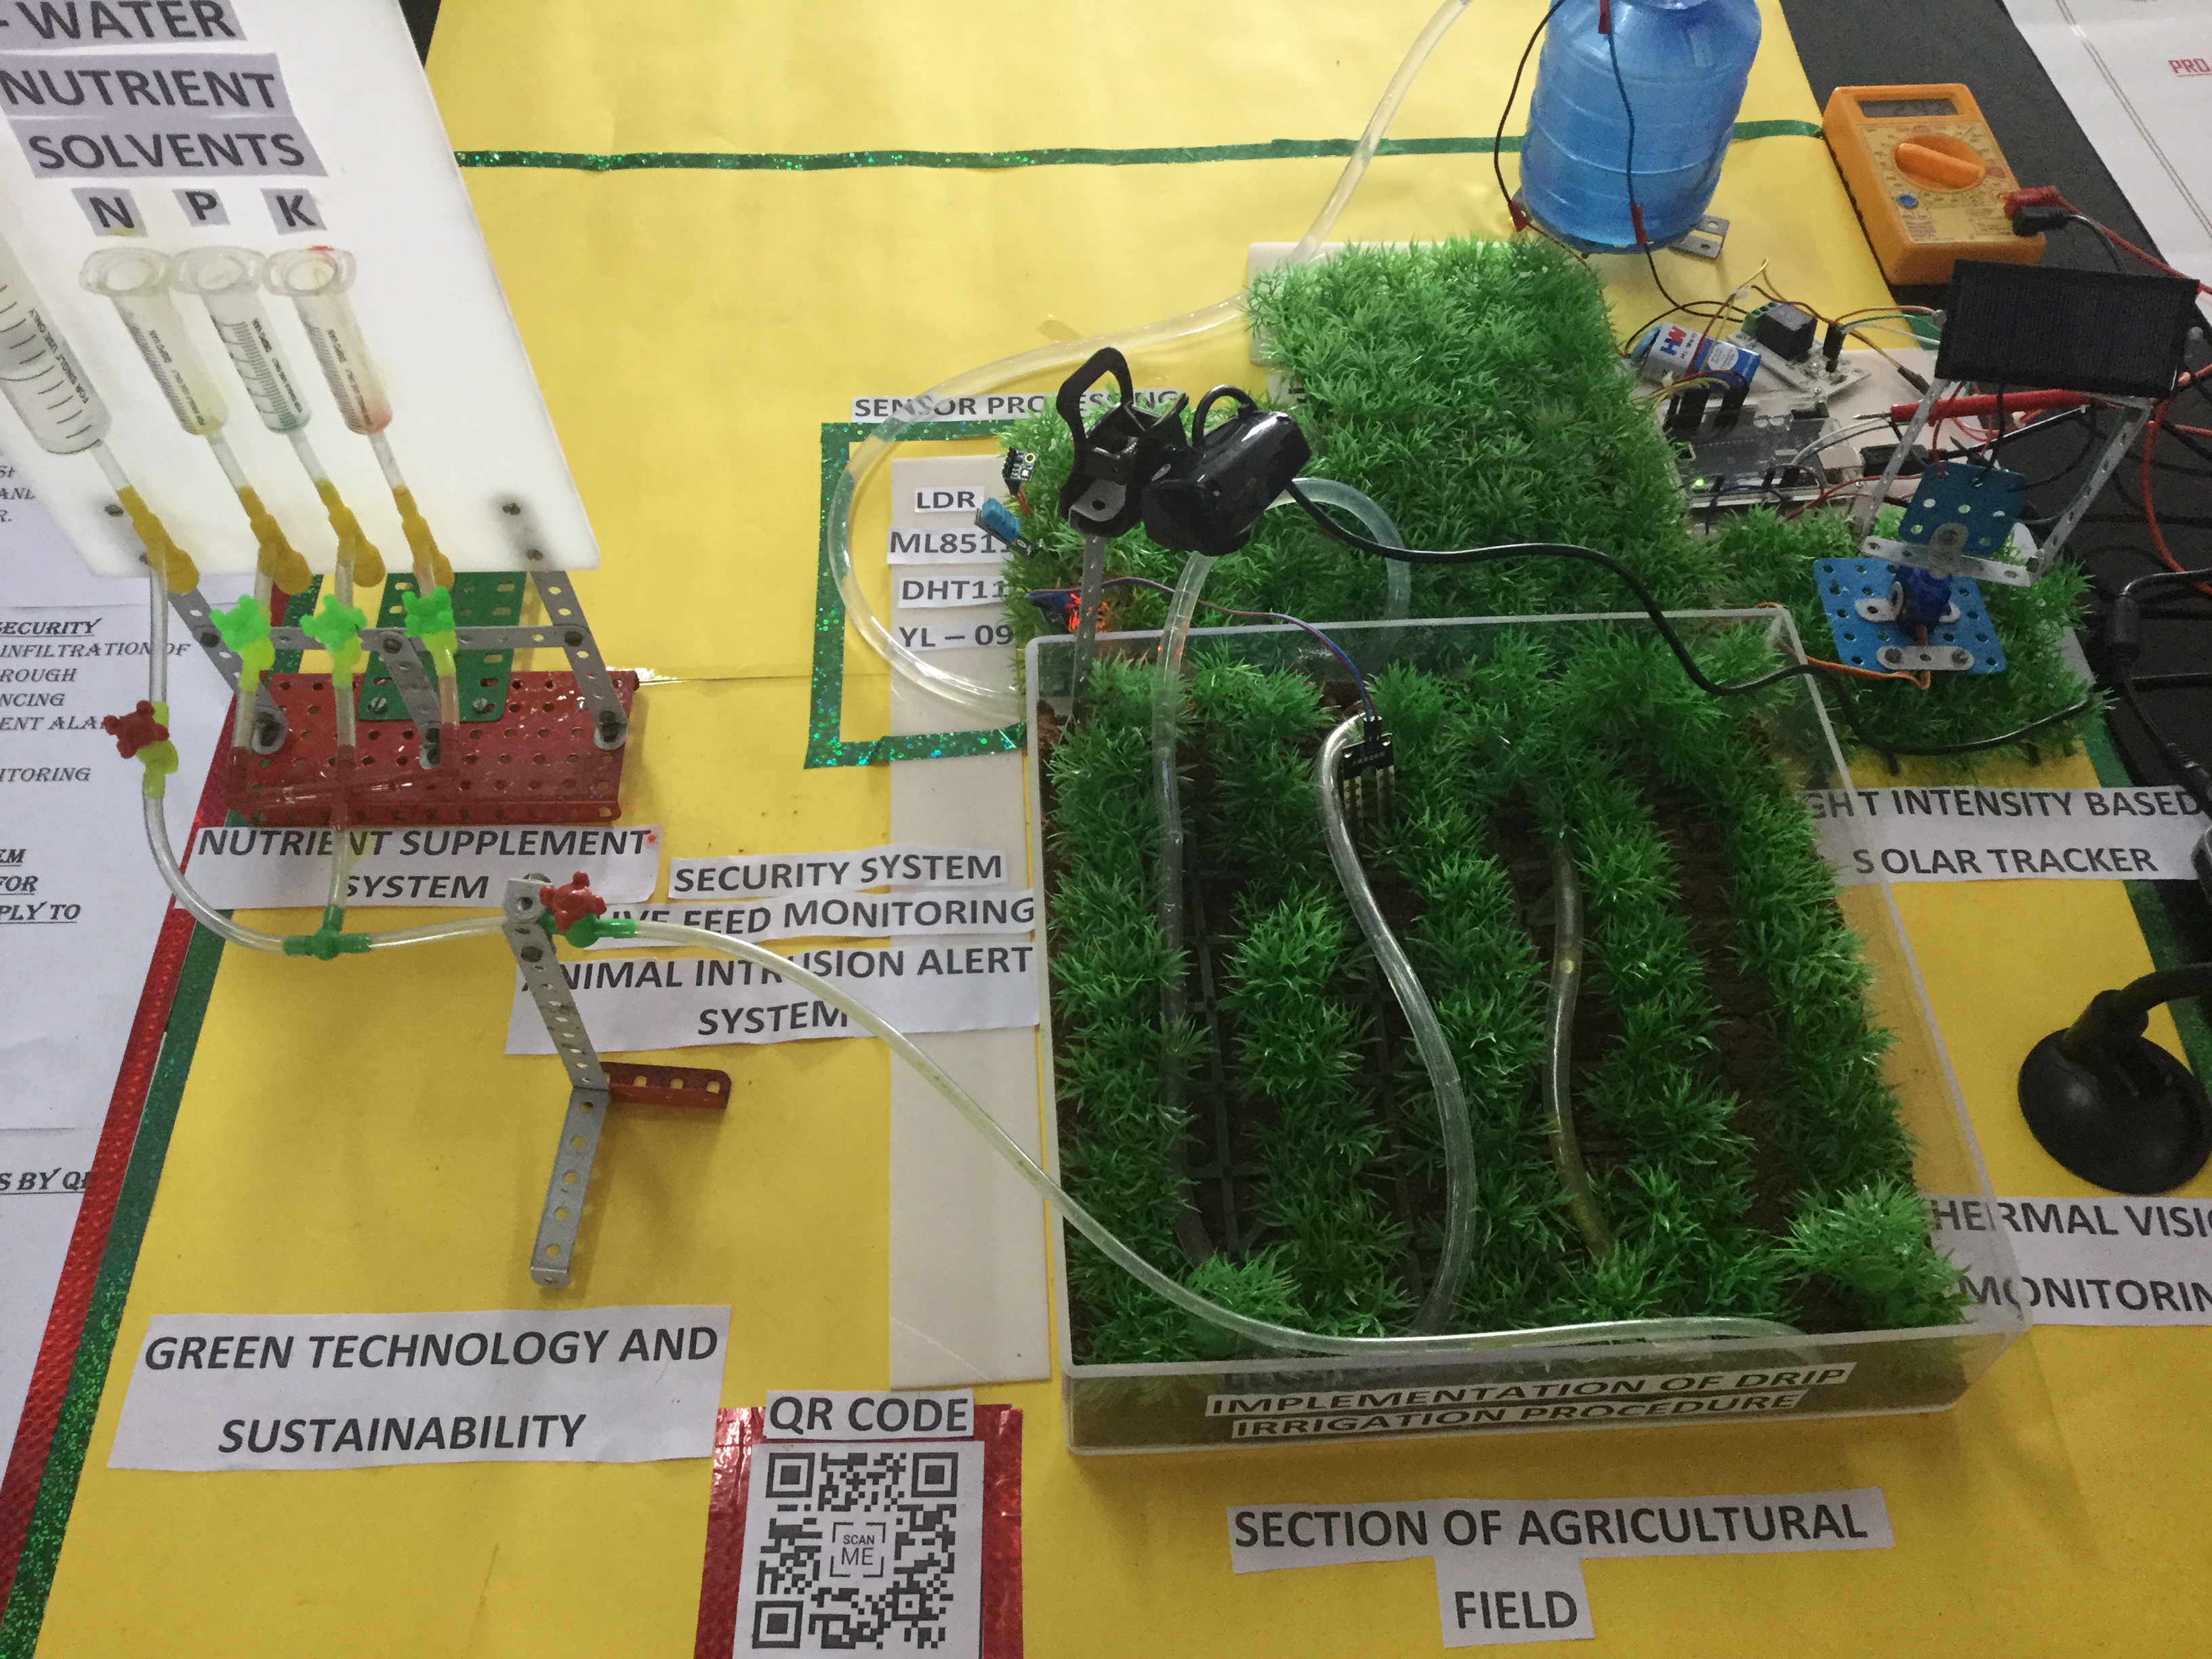 IMPLEMENTATION OF PRECISION AGRICULTURE THROUGH IOT USING